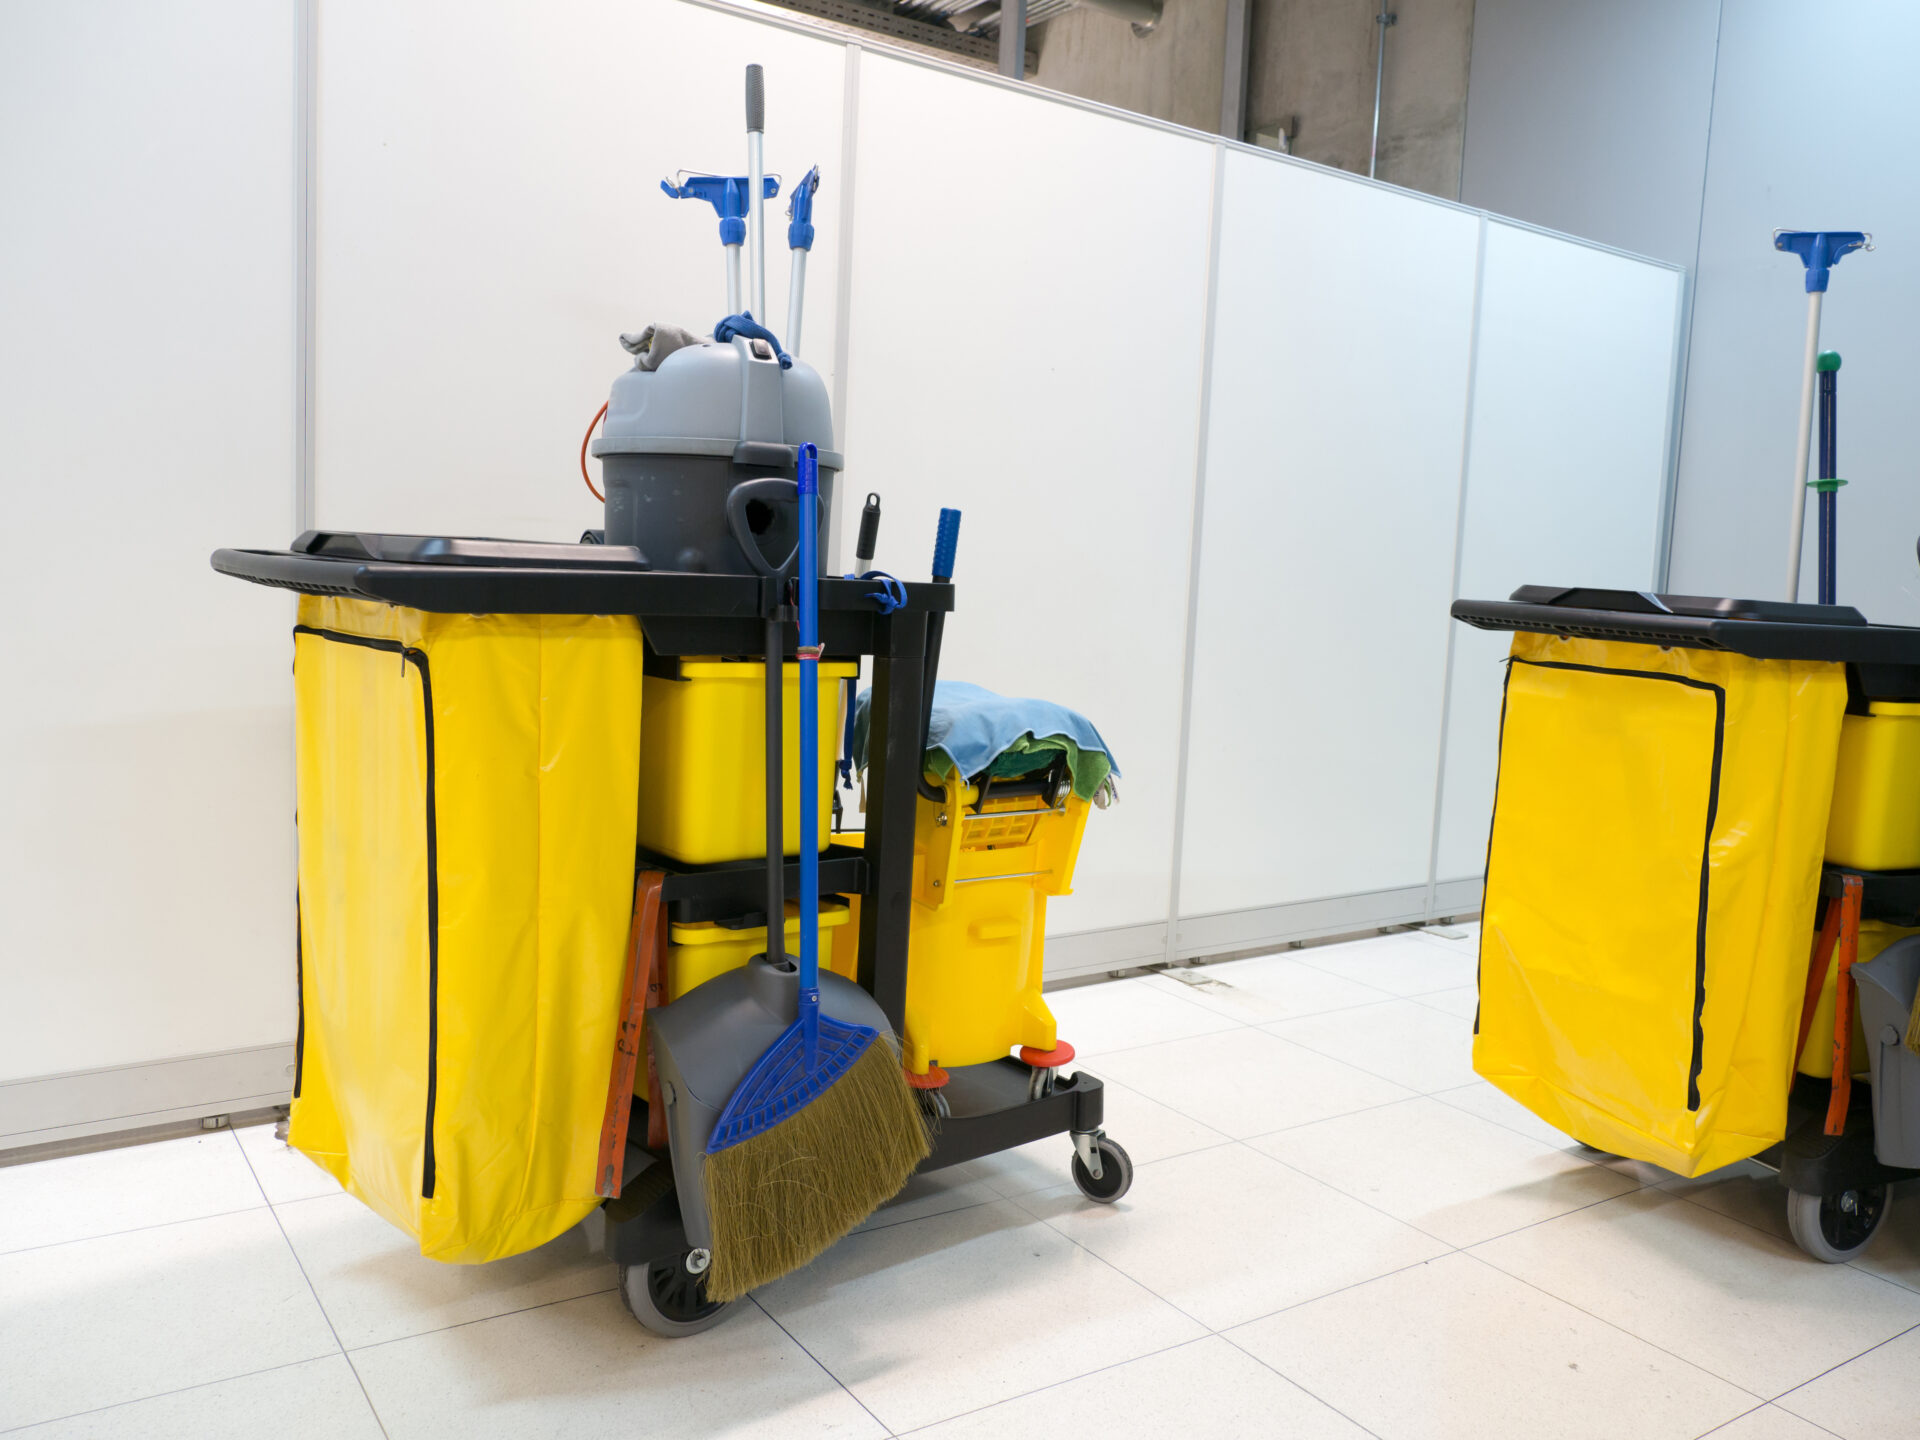 There's more to it than just this equipment. Special training required for the professional cleaning equipment.